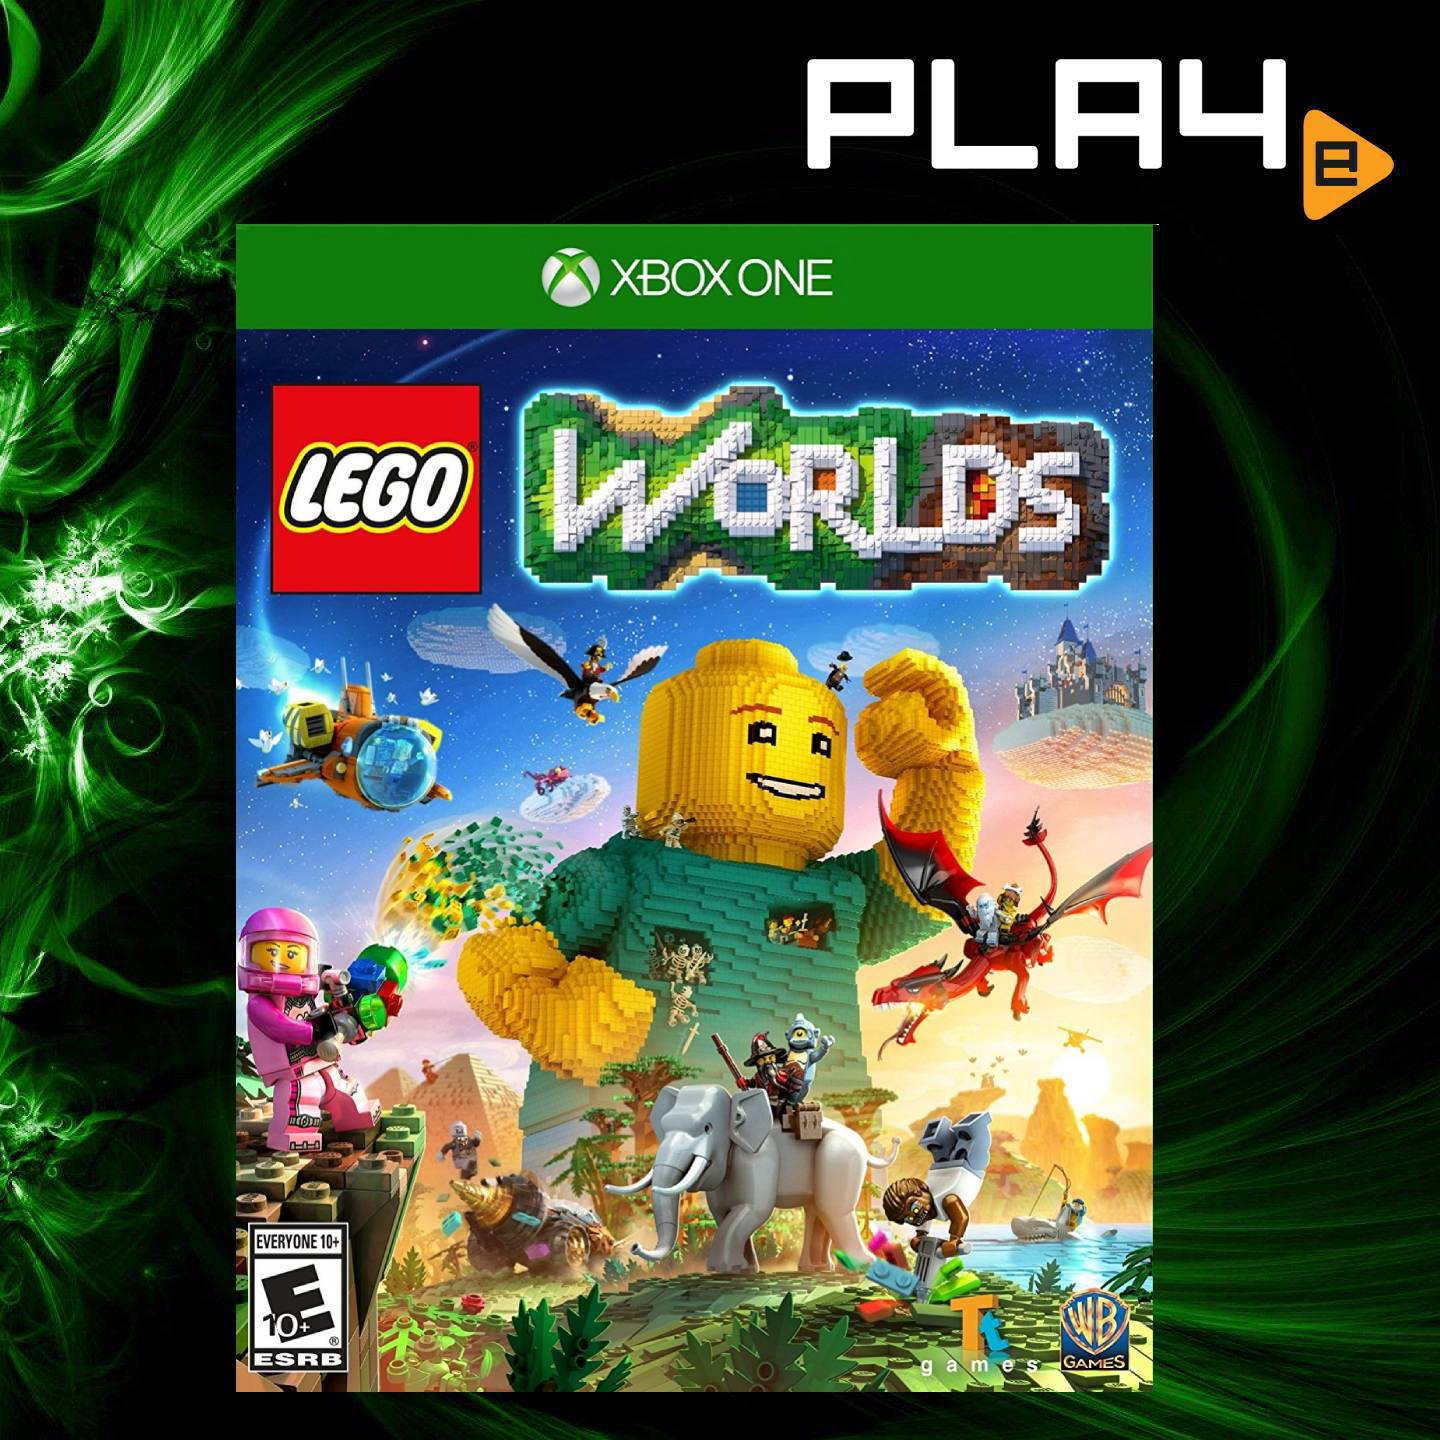 XBox One Lego World | PLAYe